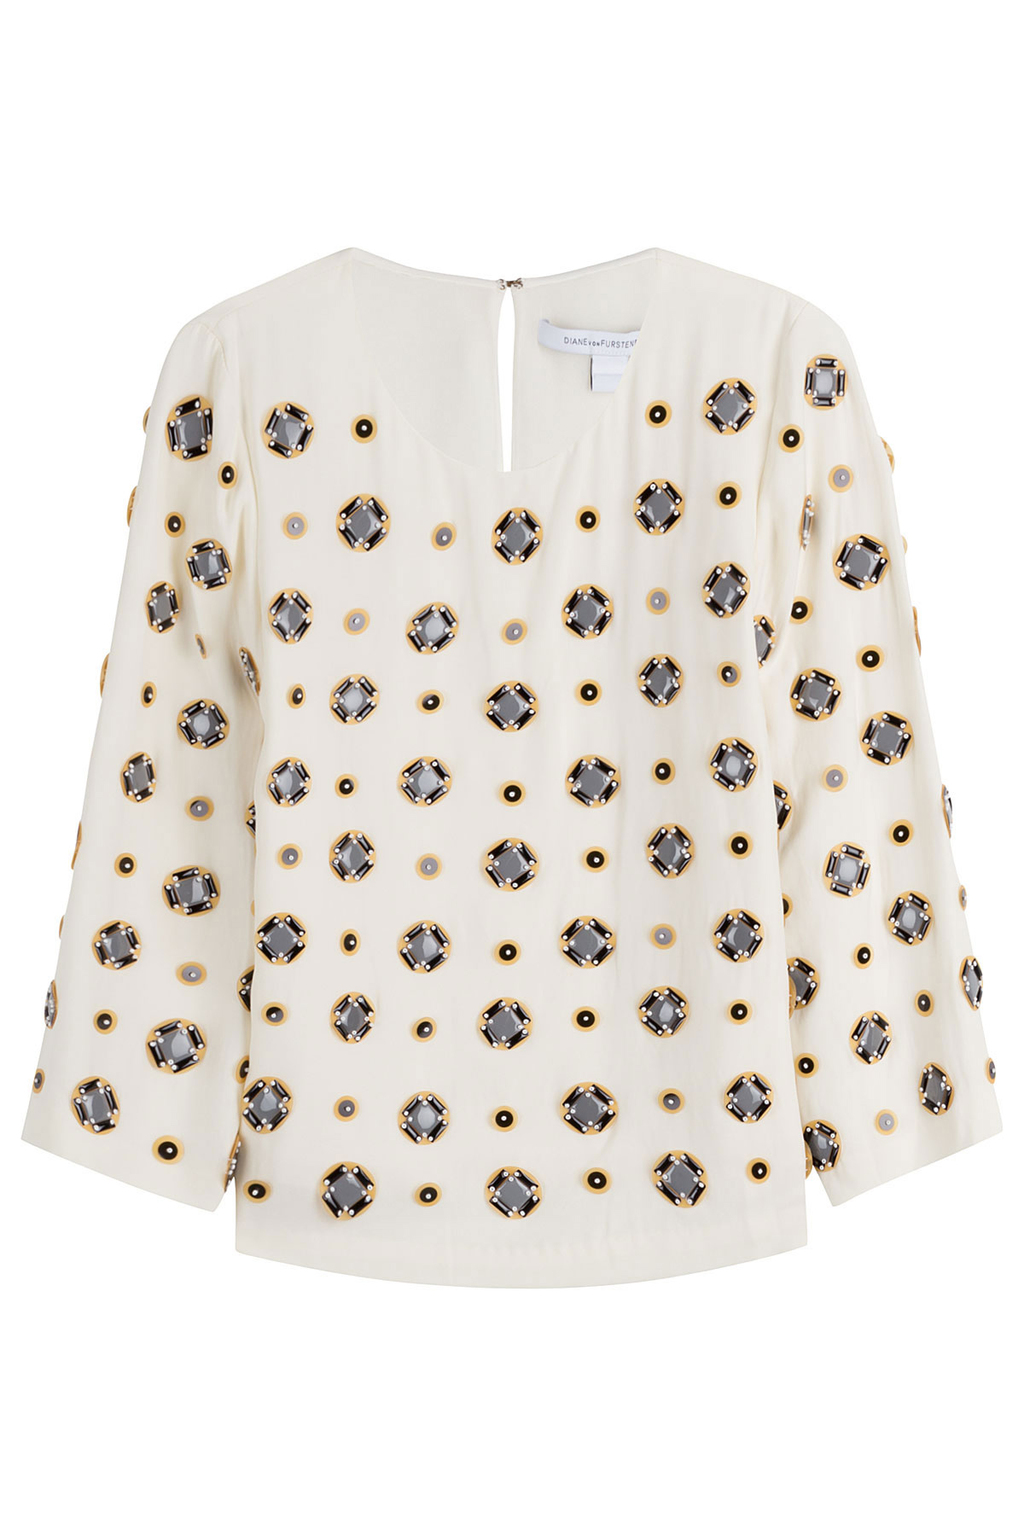 Embellished Silk Blend Blouse White - style: blouse; predominant colour: white; secondary colour: black; occasions: casual; length: standard; fibres: cotton - mix; fit: body skimming; neckline: crew; sleeve length: long sleeve; sleeve style: standard; texture group: silky - light; pattern type: fabric; pattern: patterned/print; multicoloured: multicoloured; season: s/s 2016